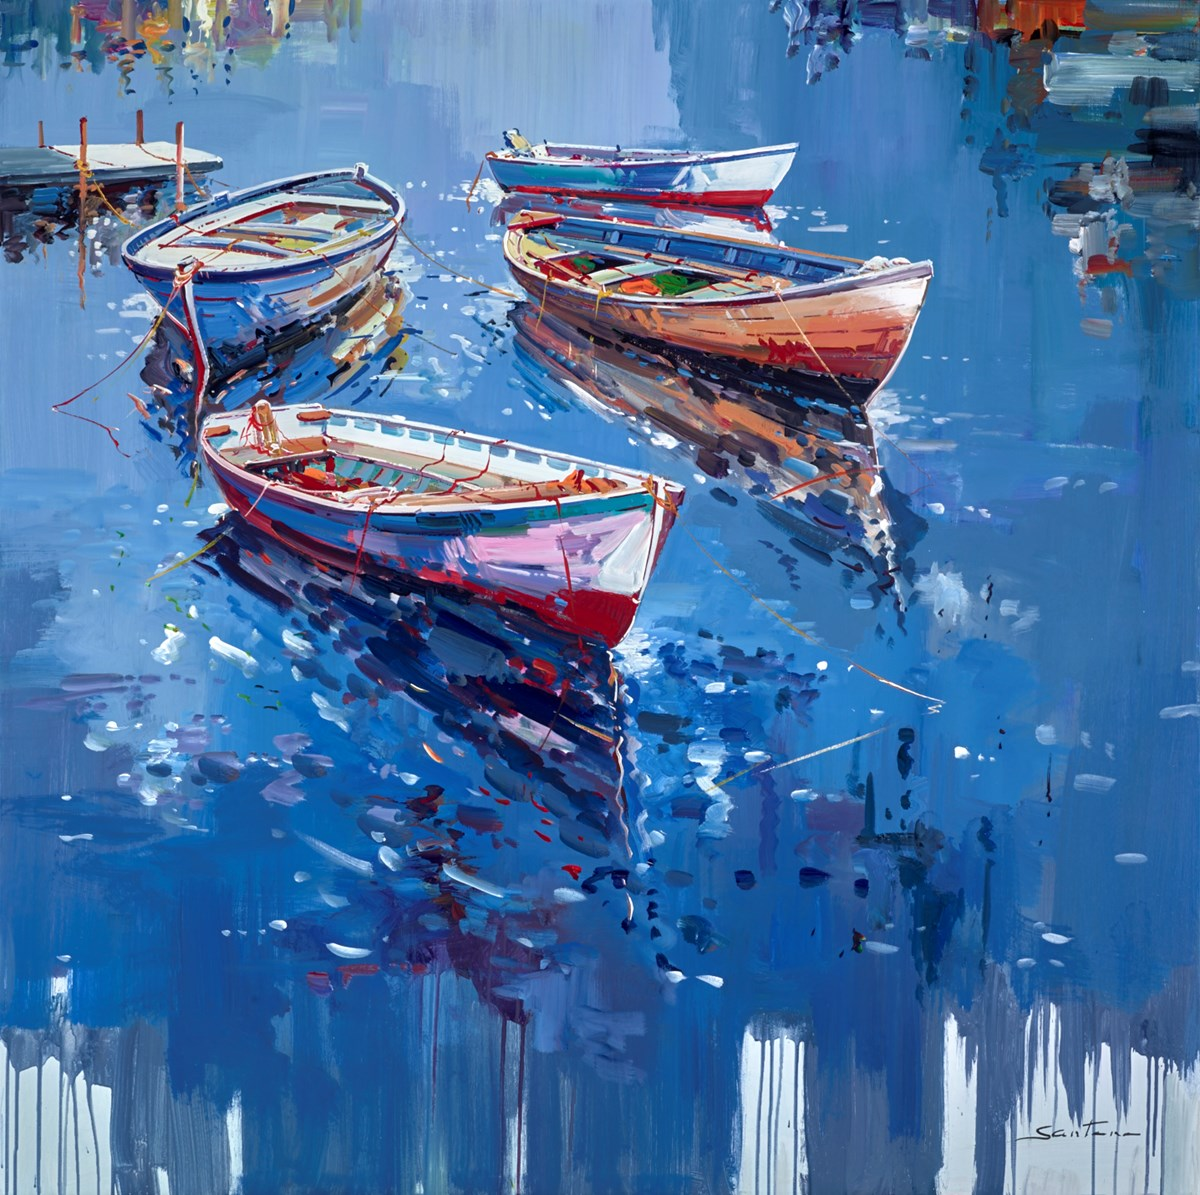 Blue Harbour Reflections IV by santana -  sized 47x47 inches. Available from Whitewall Galleries